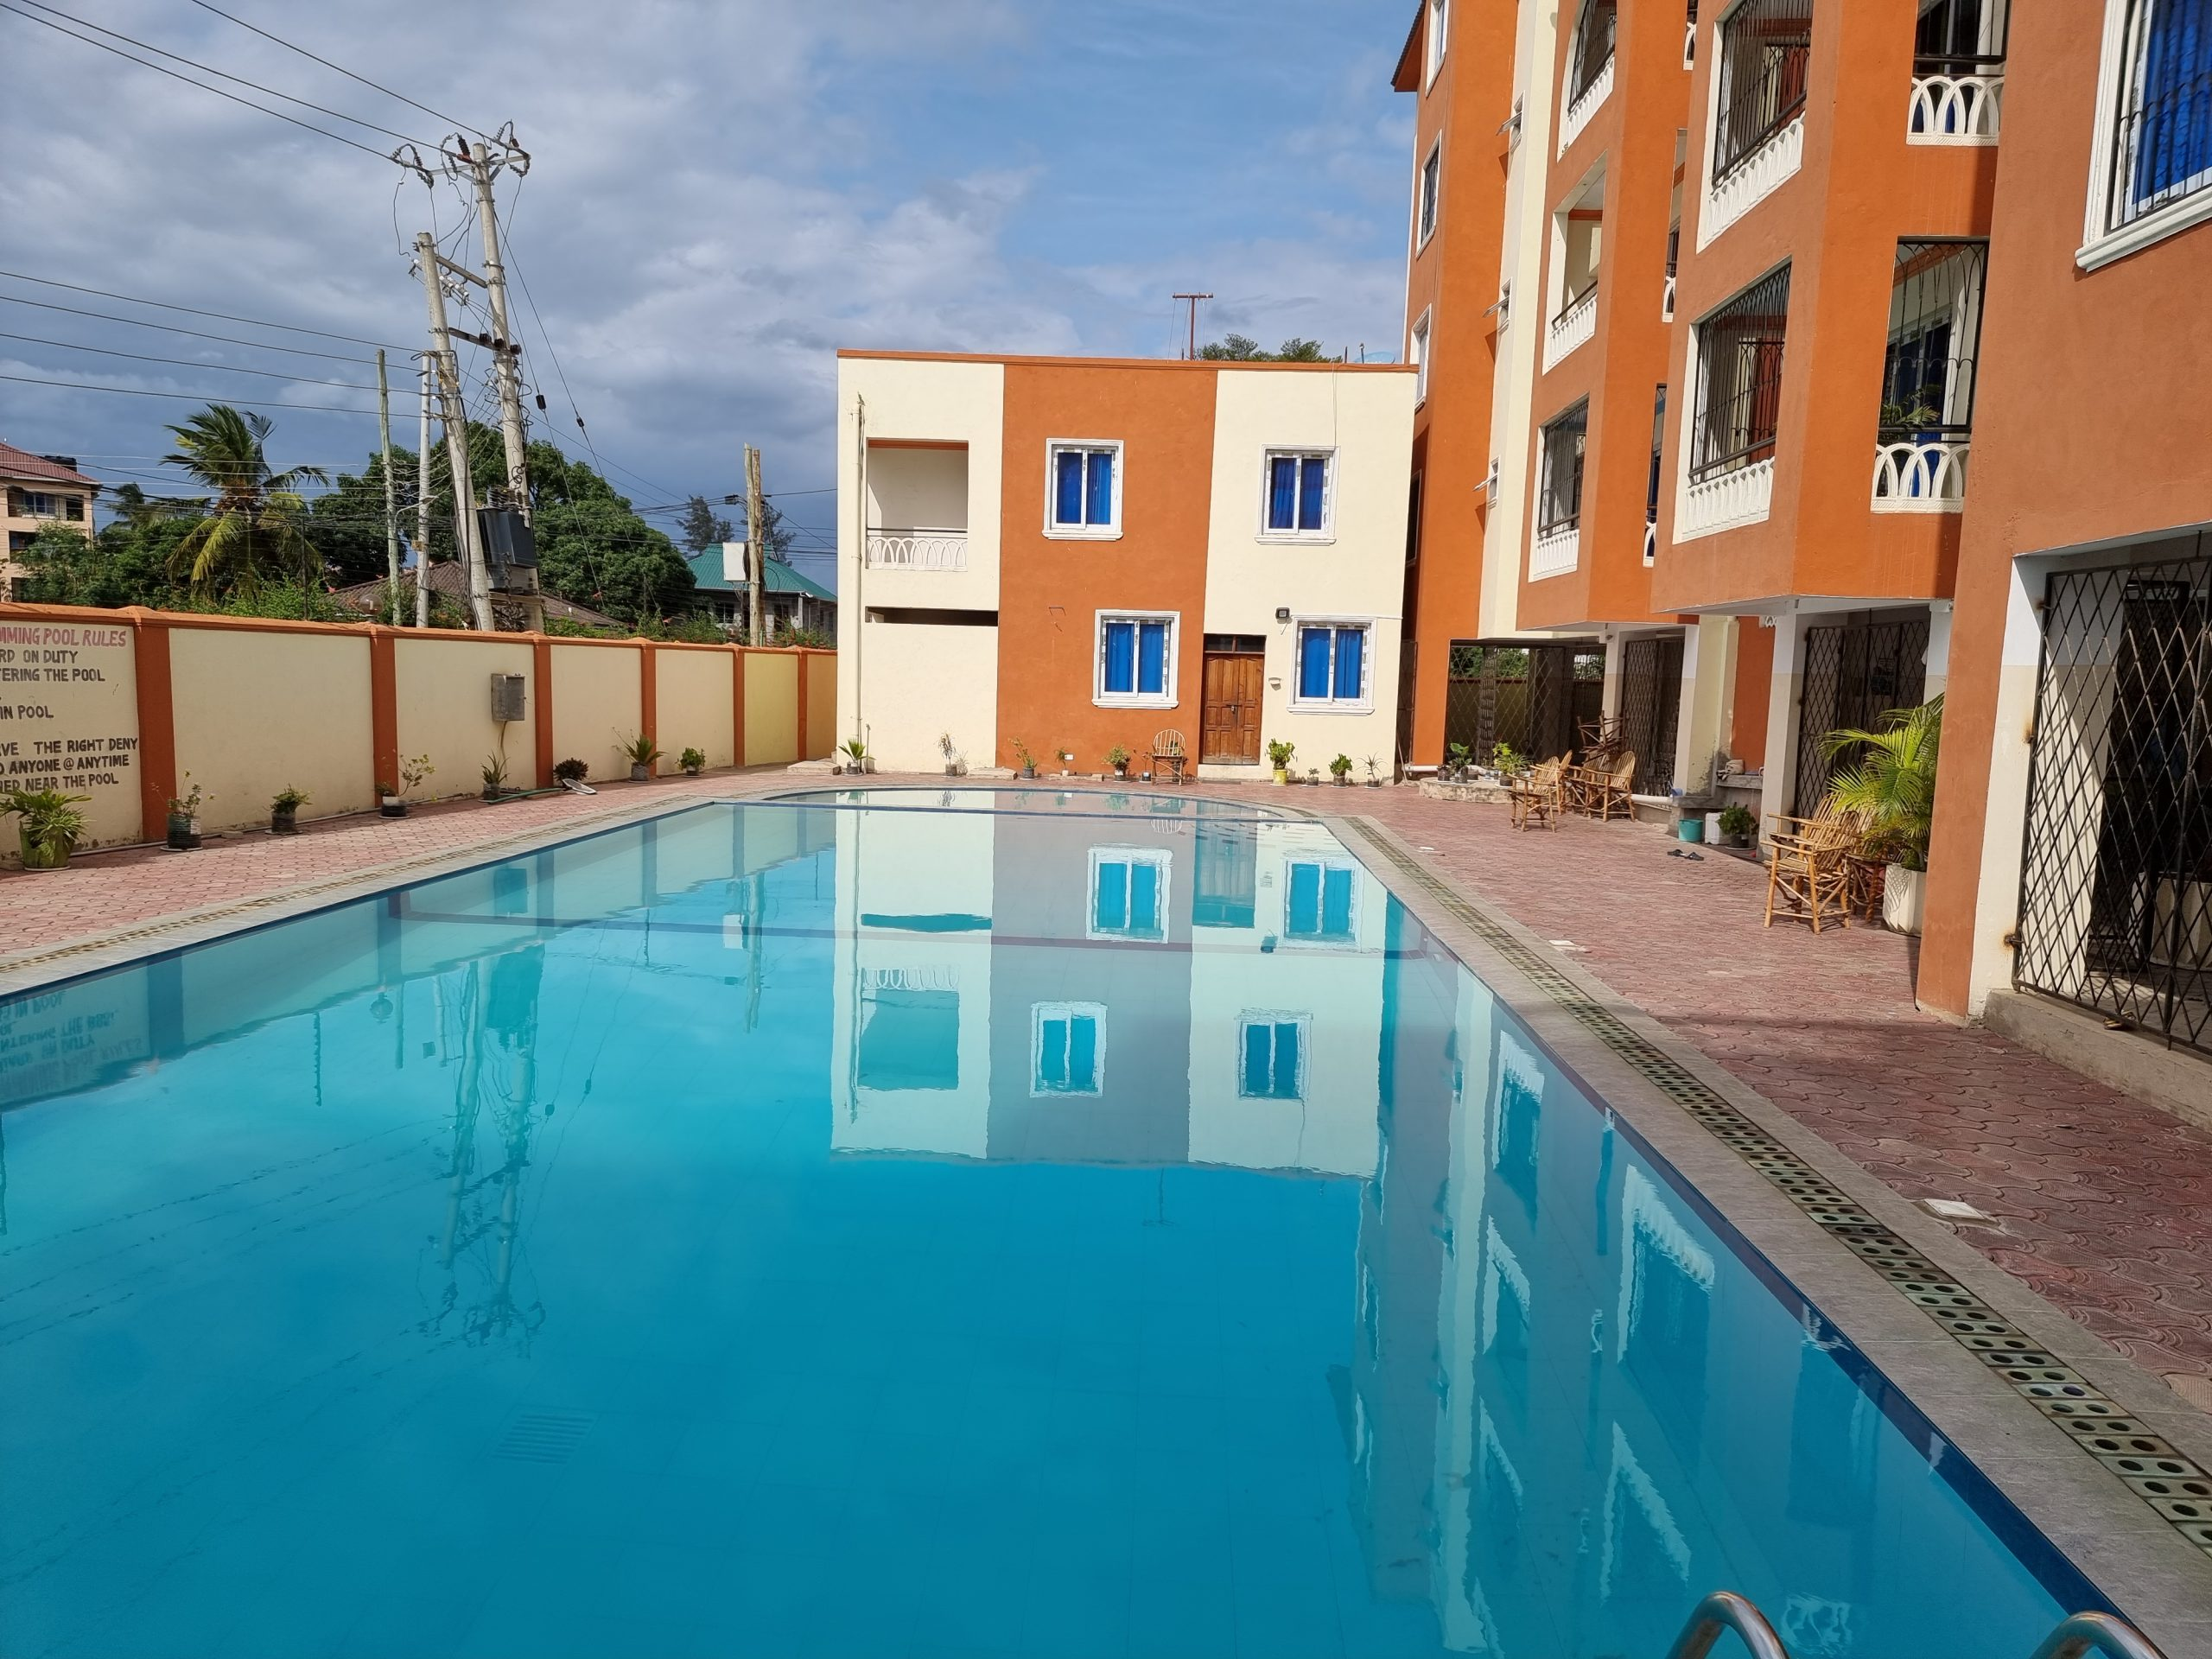 3br Mtwapa Luxury apartments for Rent in Mtwapa.